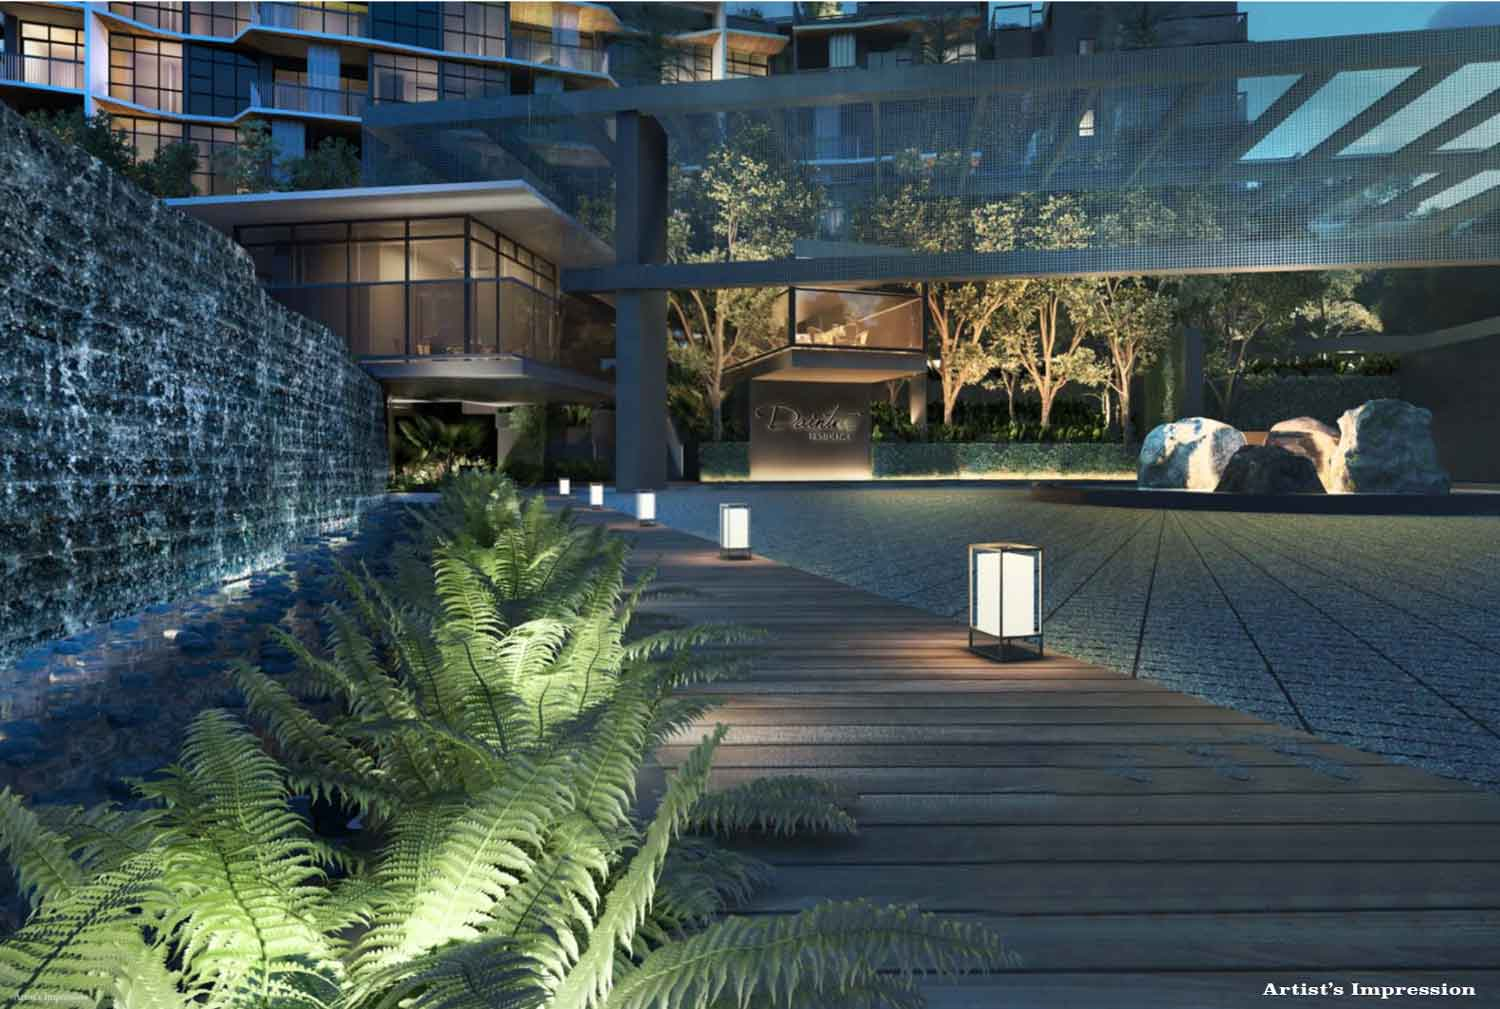 Valley Boulevard, Lantern Arrival and Water Terrace inspired landscaping in Daintree Residence Condo